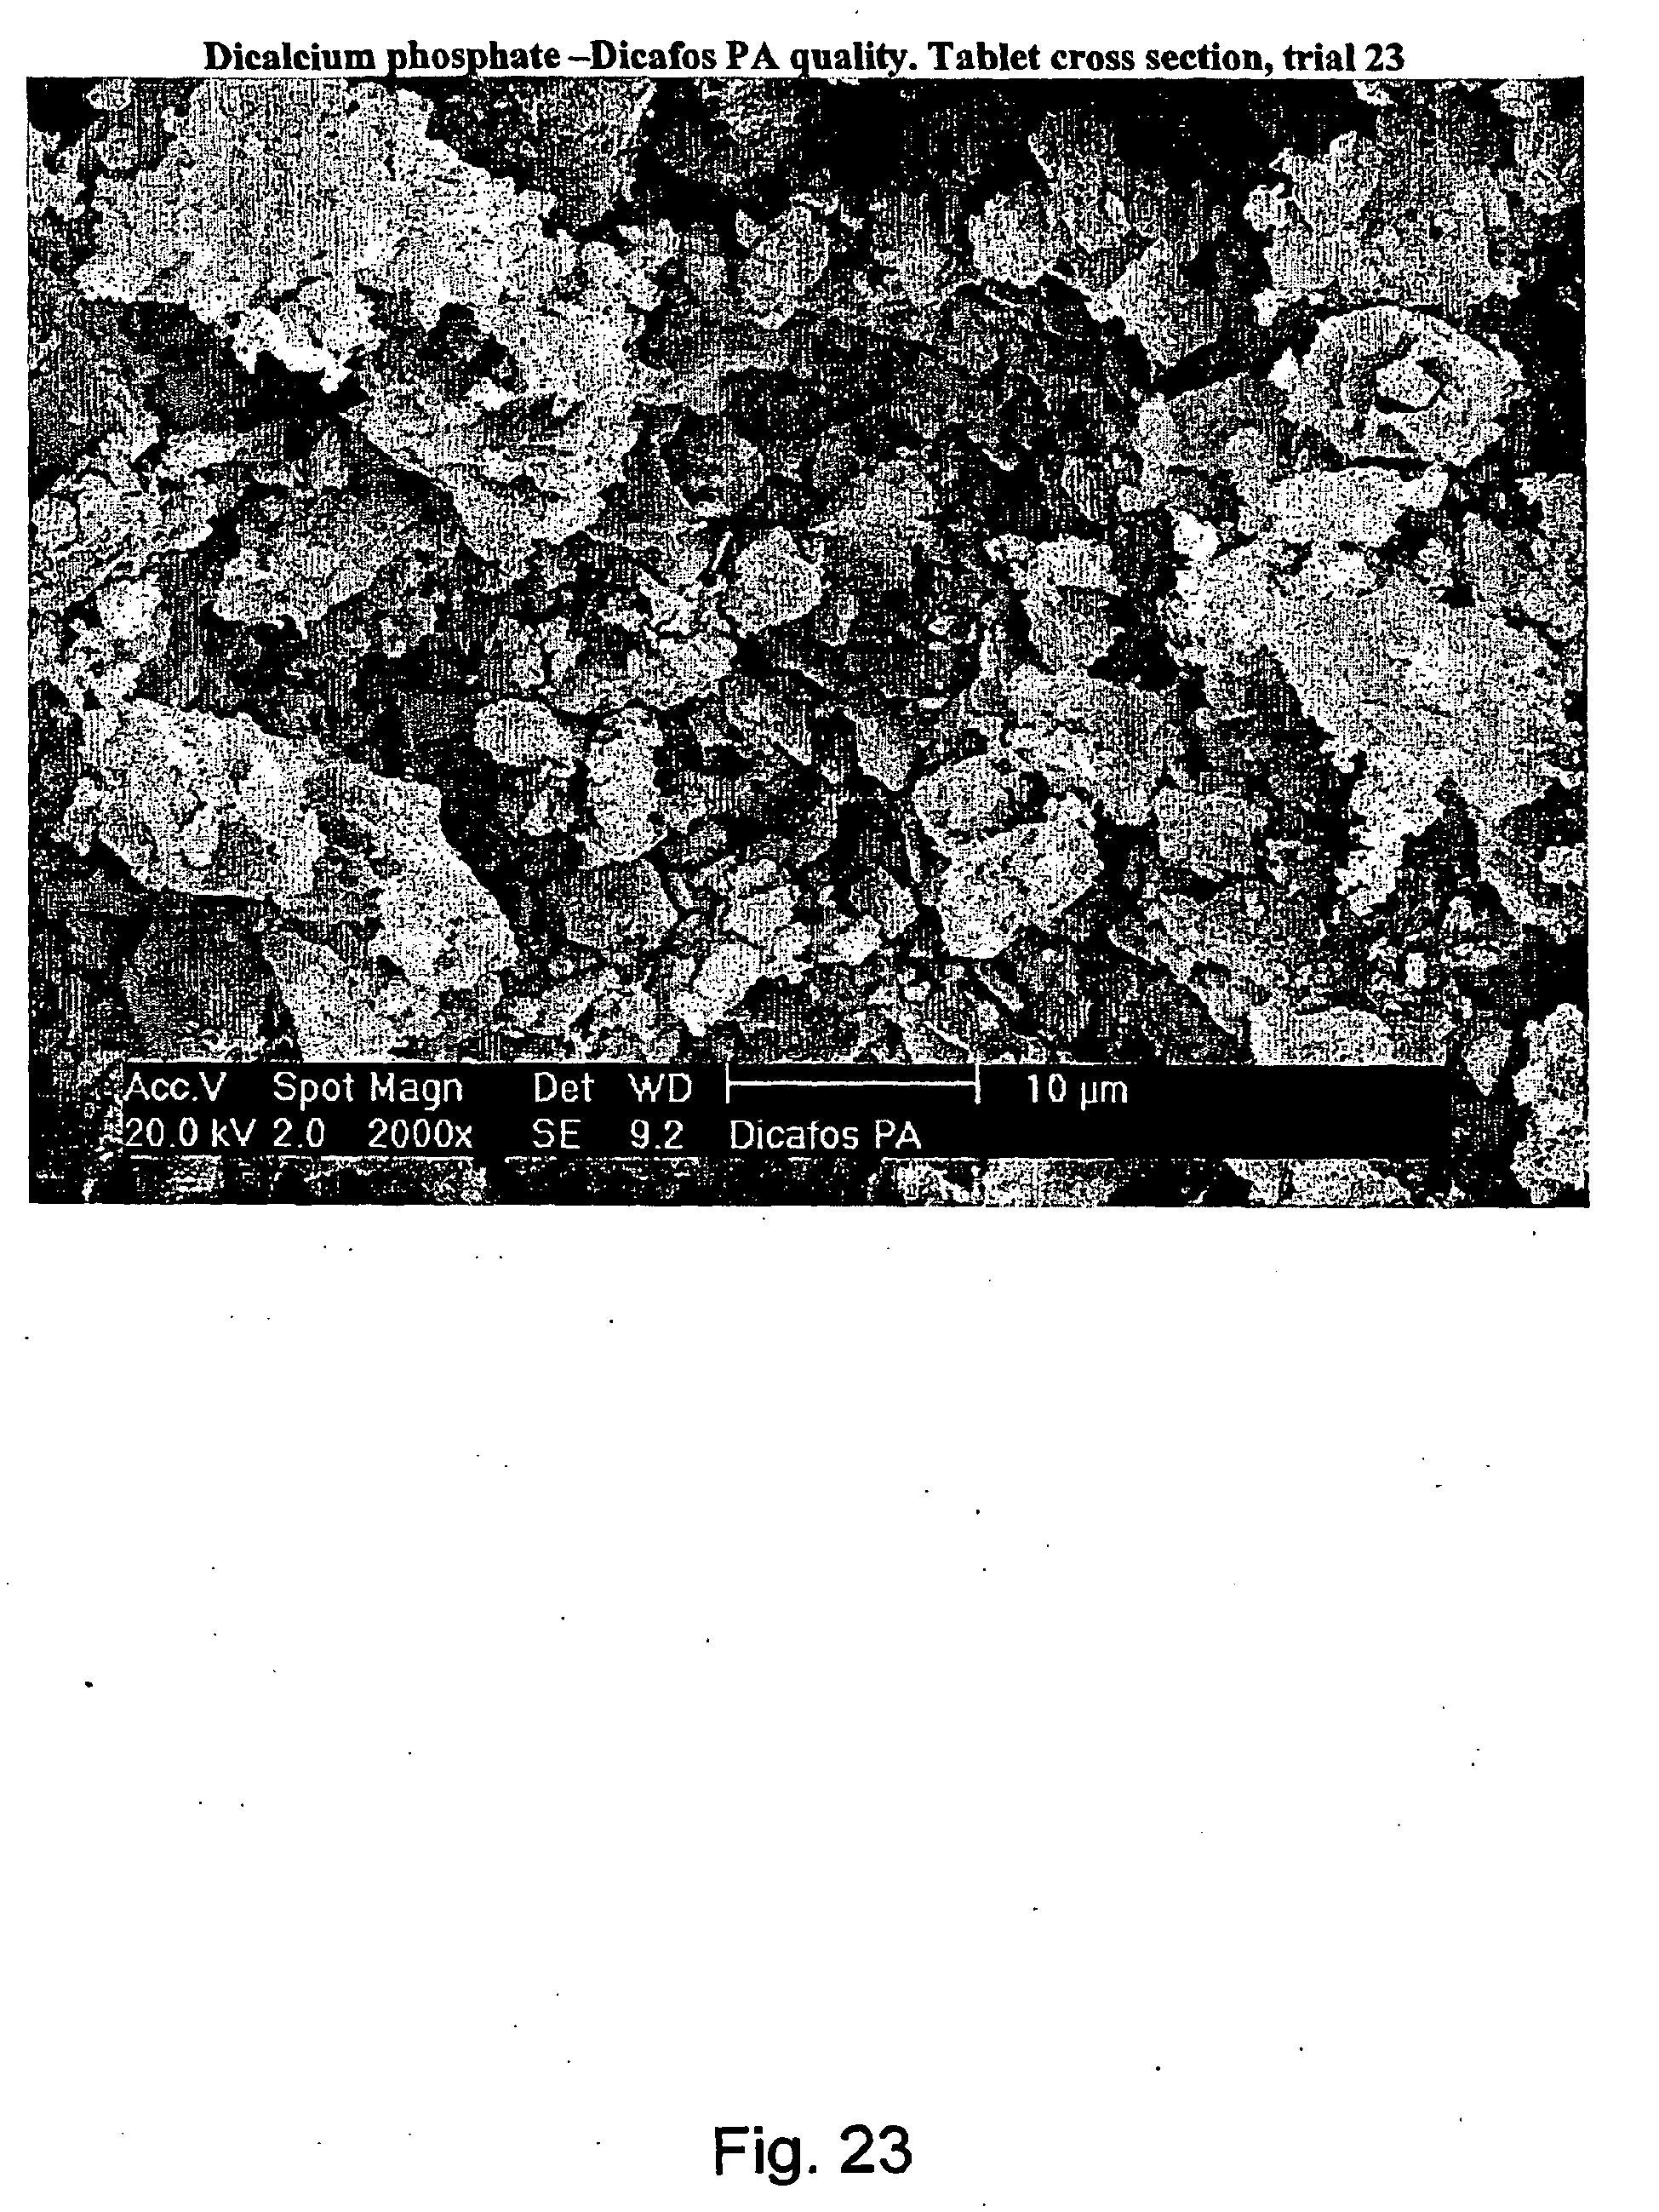 PRE-COMPACTED CALCIUM-CONTAINING COMPOSITIONS - Patent 1962806